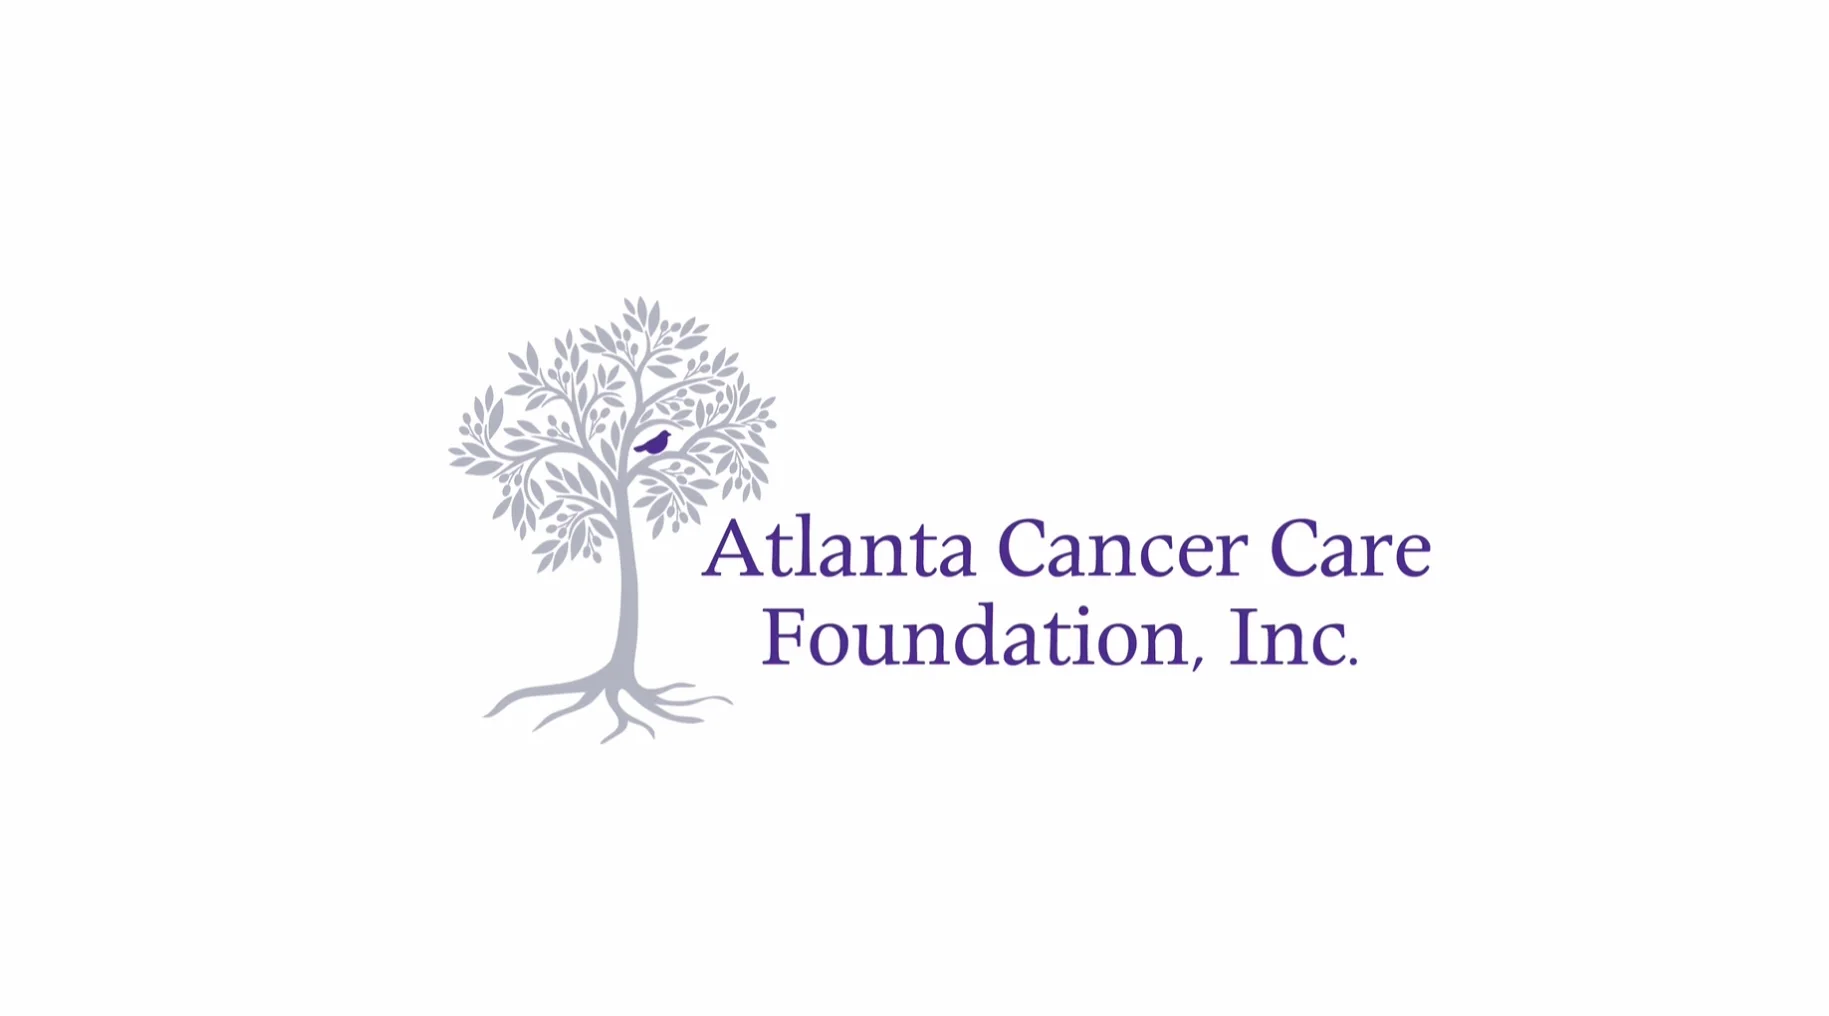 Atlanta Cancer Care Foundation